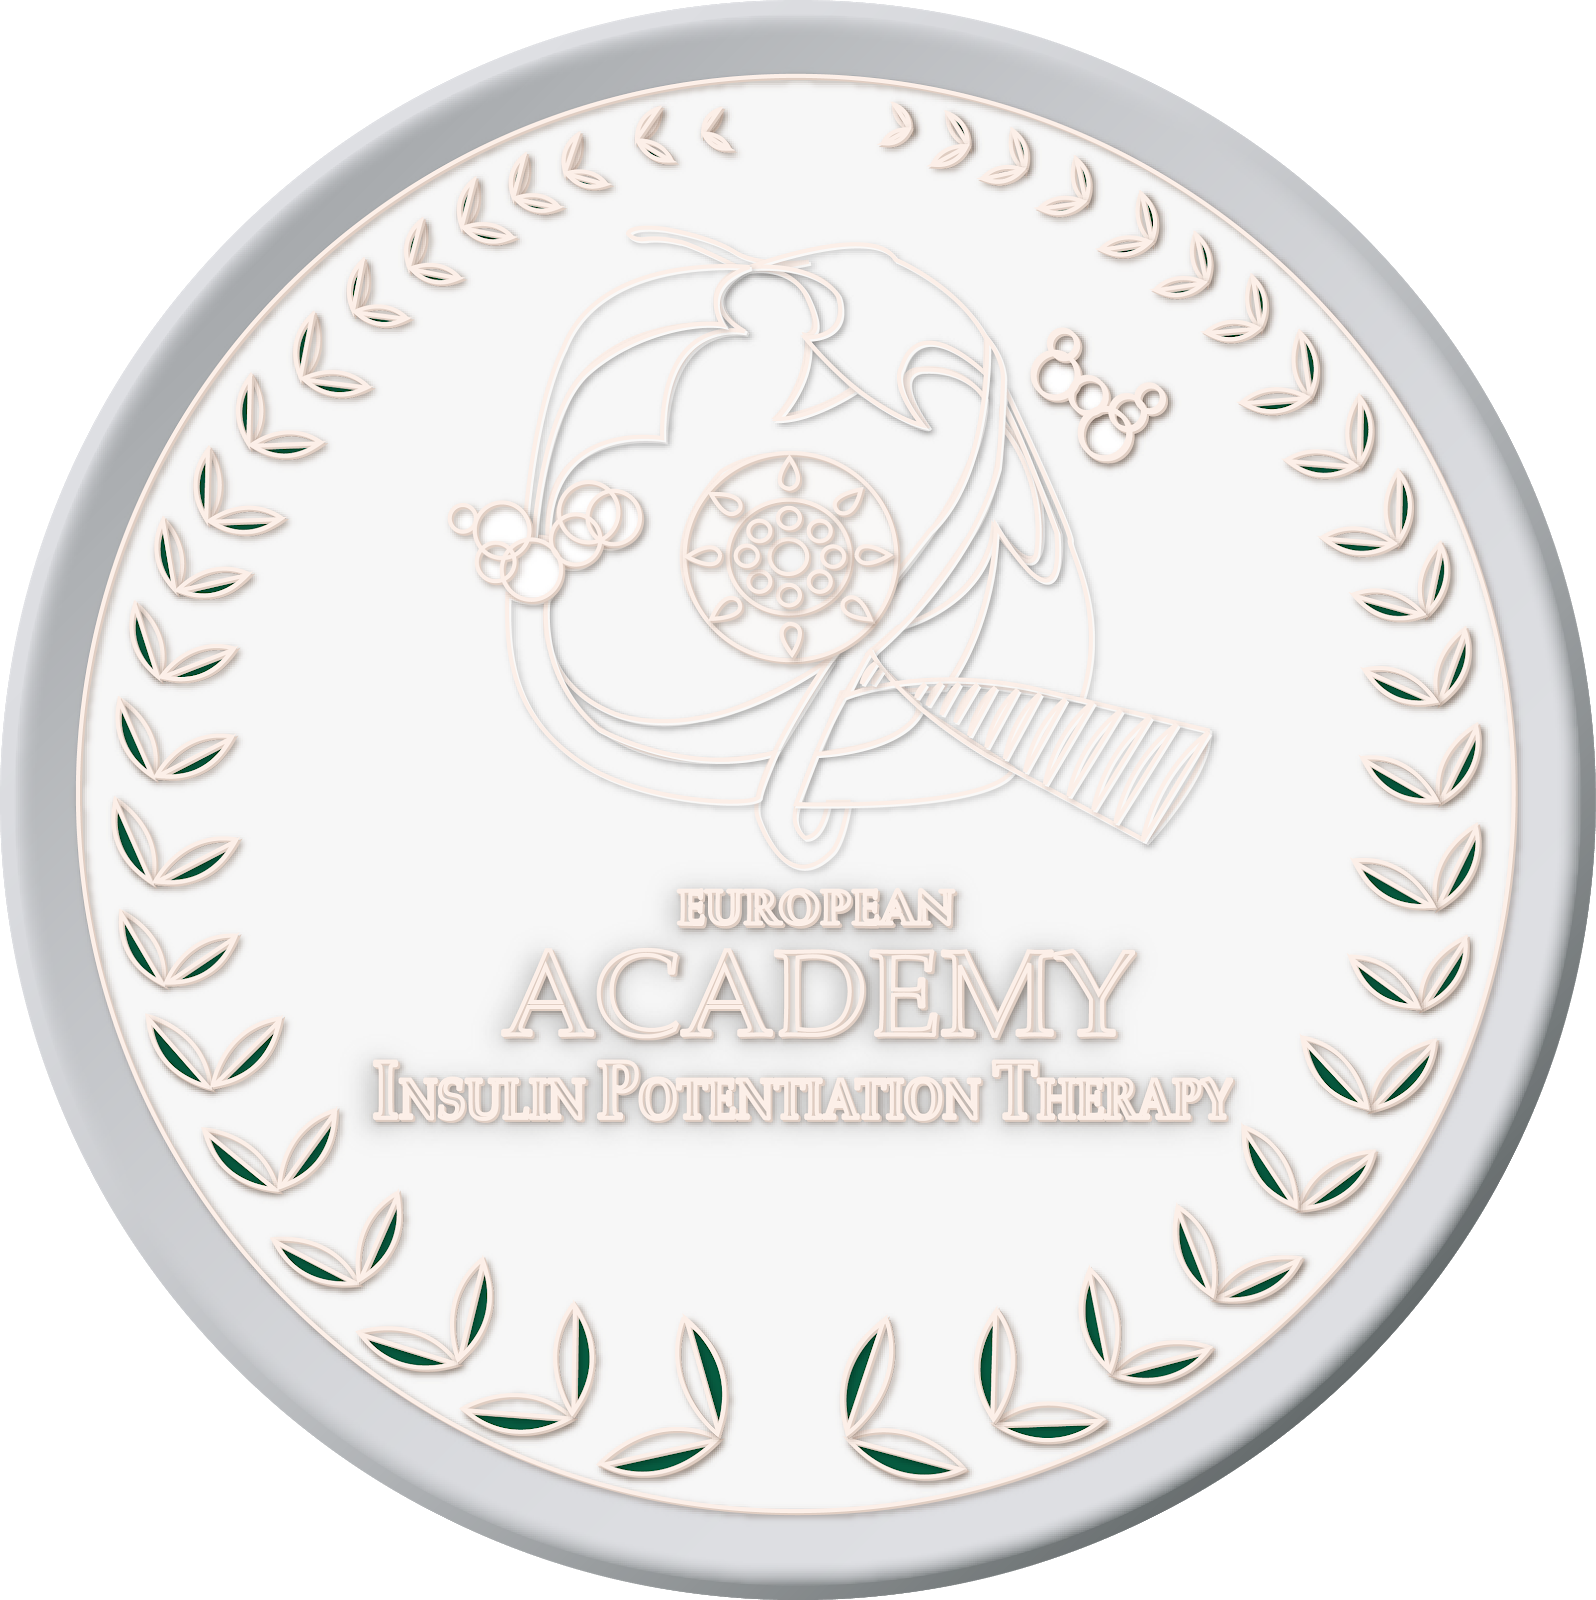 The Academy for Insulin Potentiation Therapy